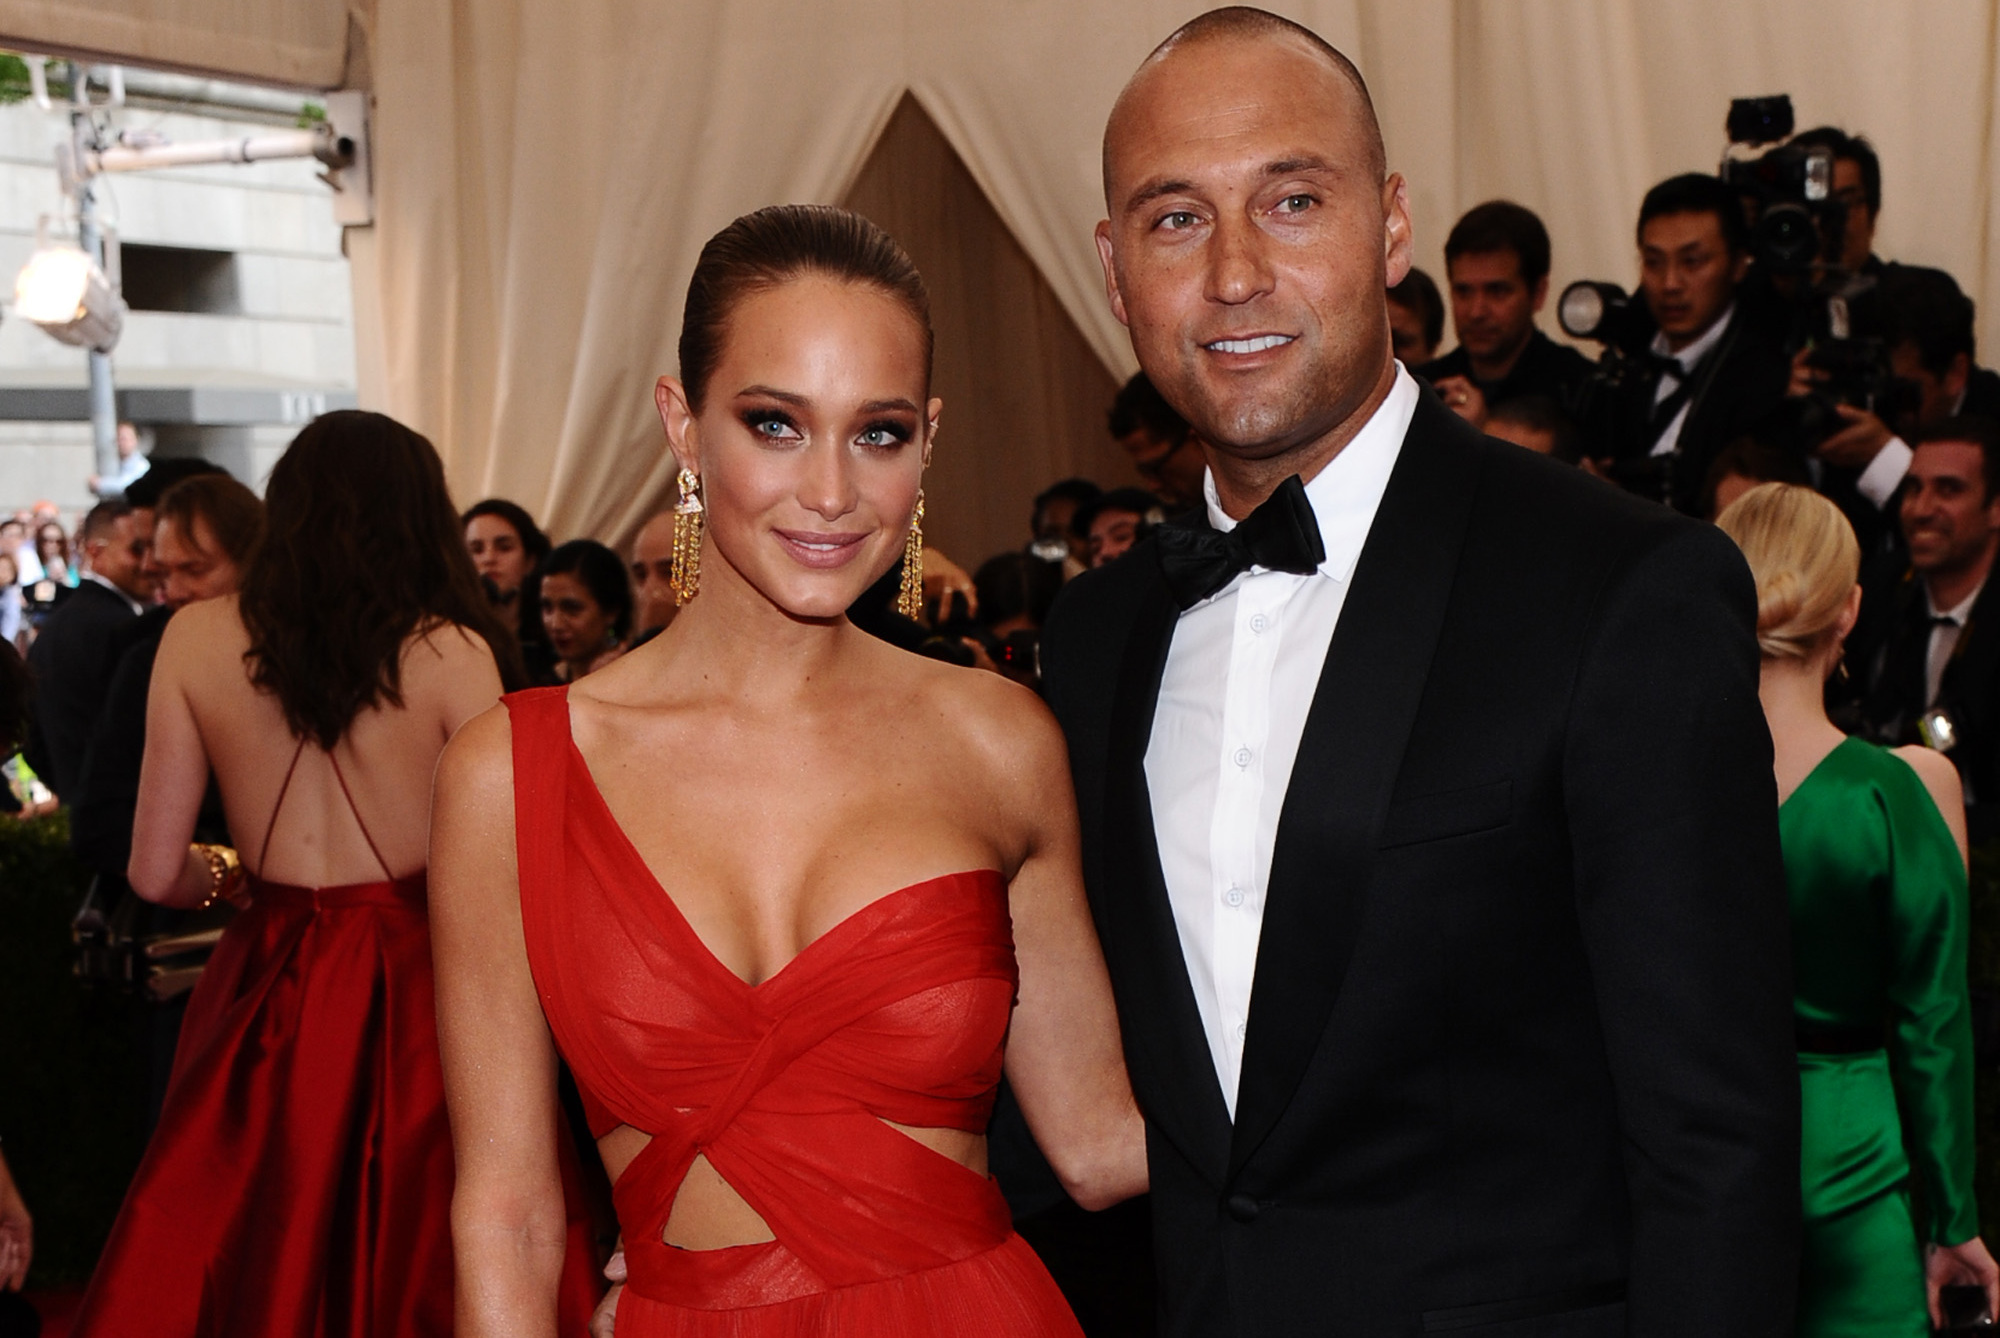 who is derek jeter currently dating